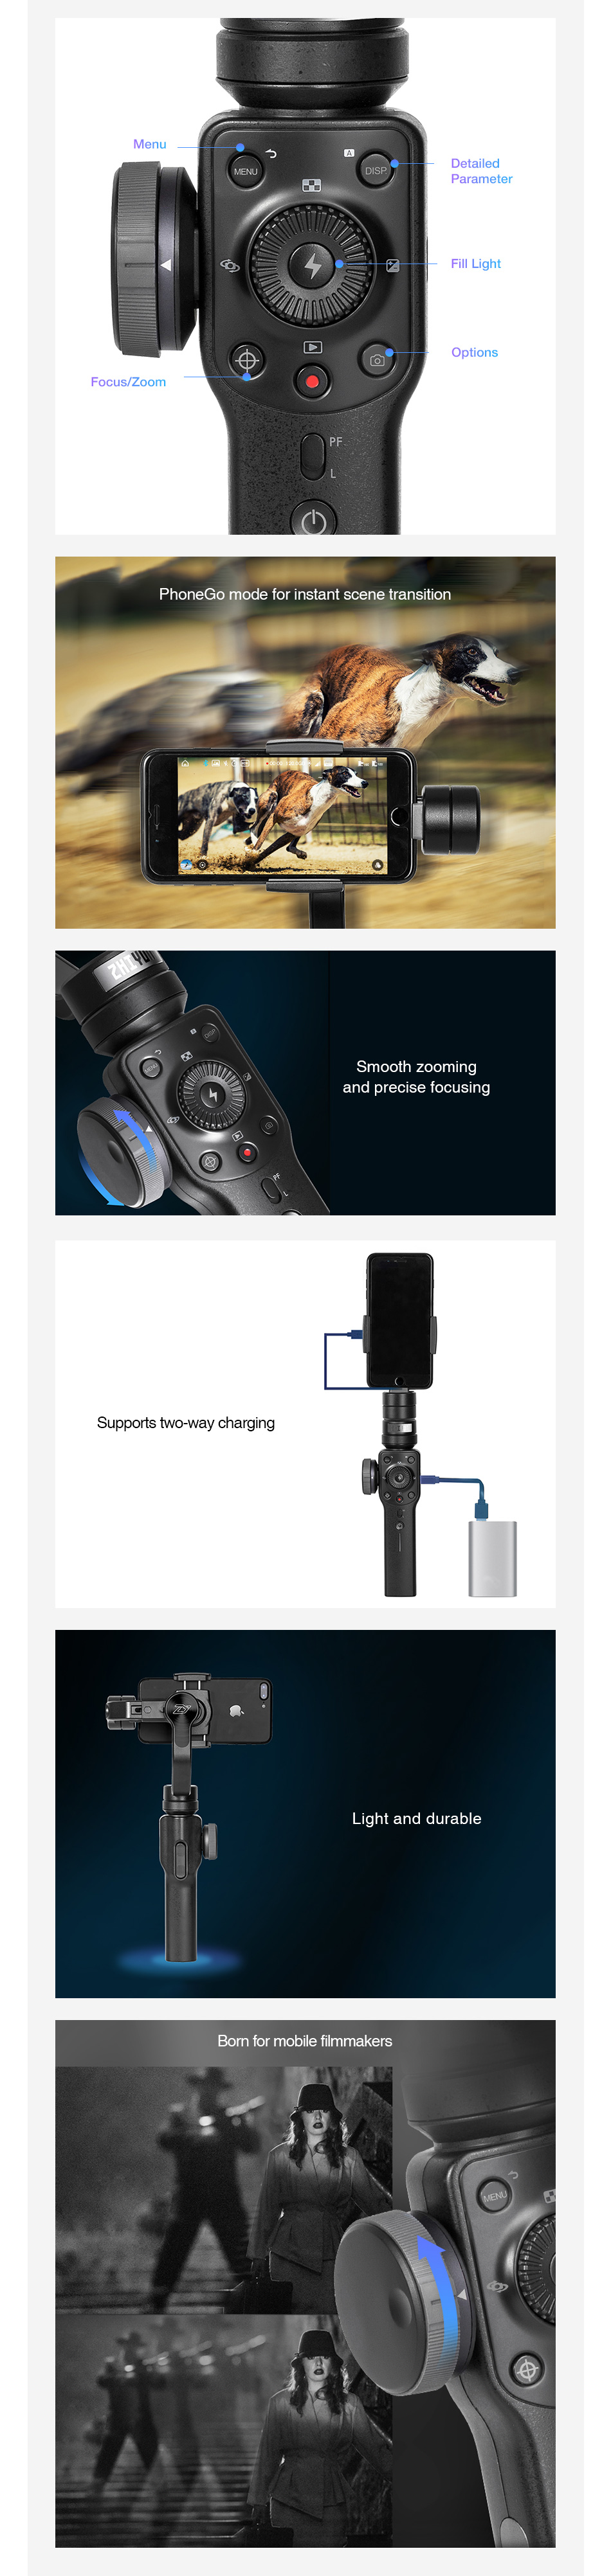 Zhiyun Smooth 4 3-Axis Handhelp Gimbal Stabilizer for Smartphone 4000mAh